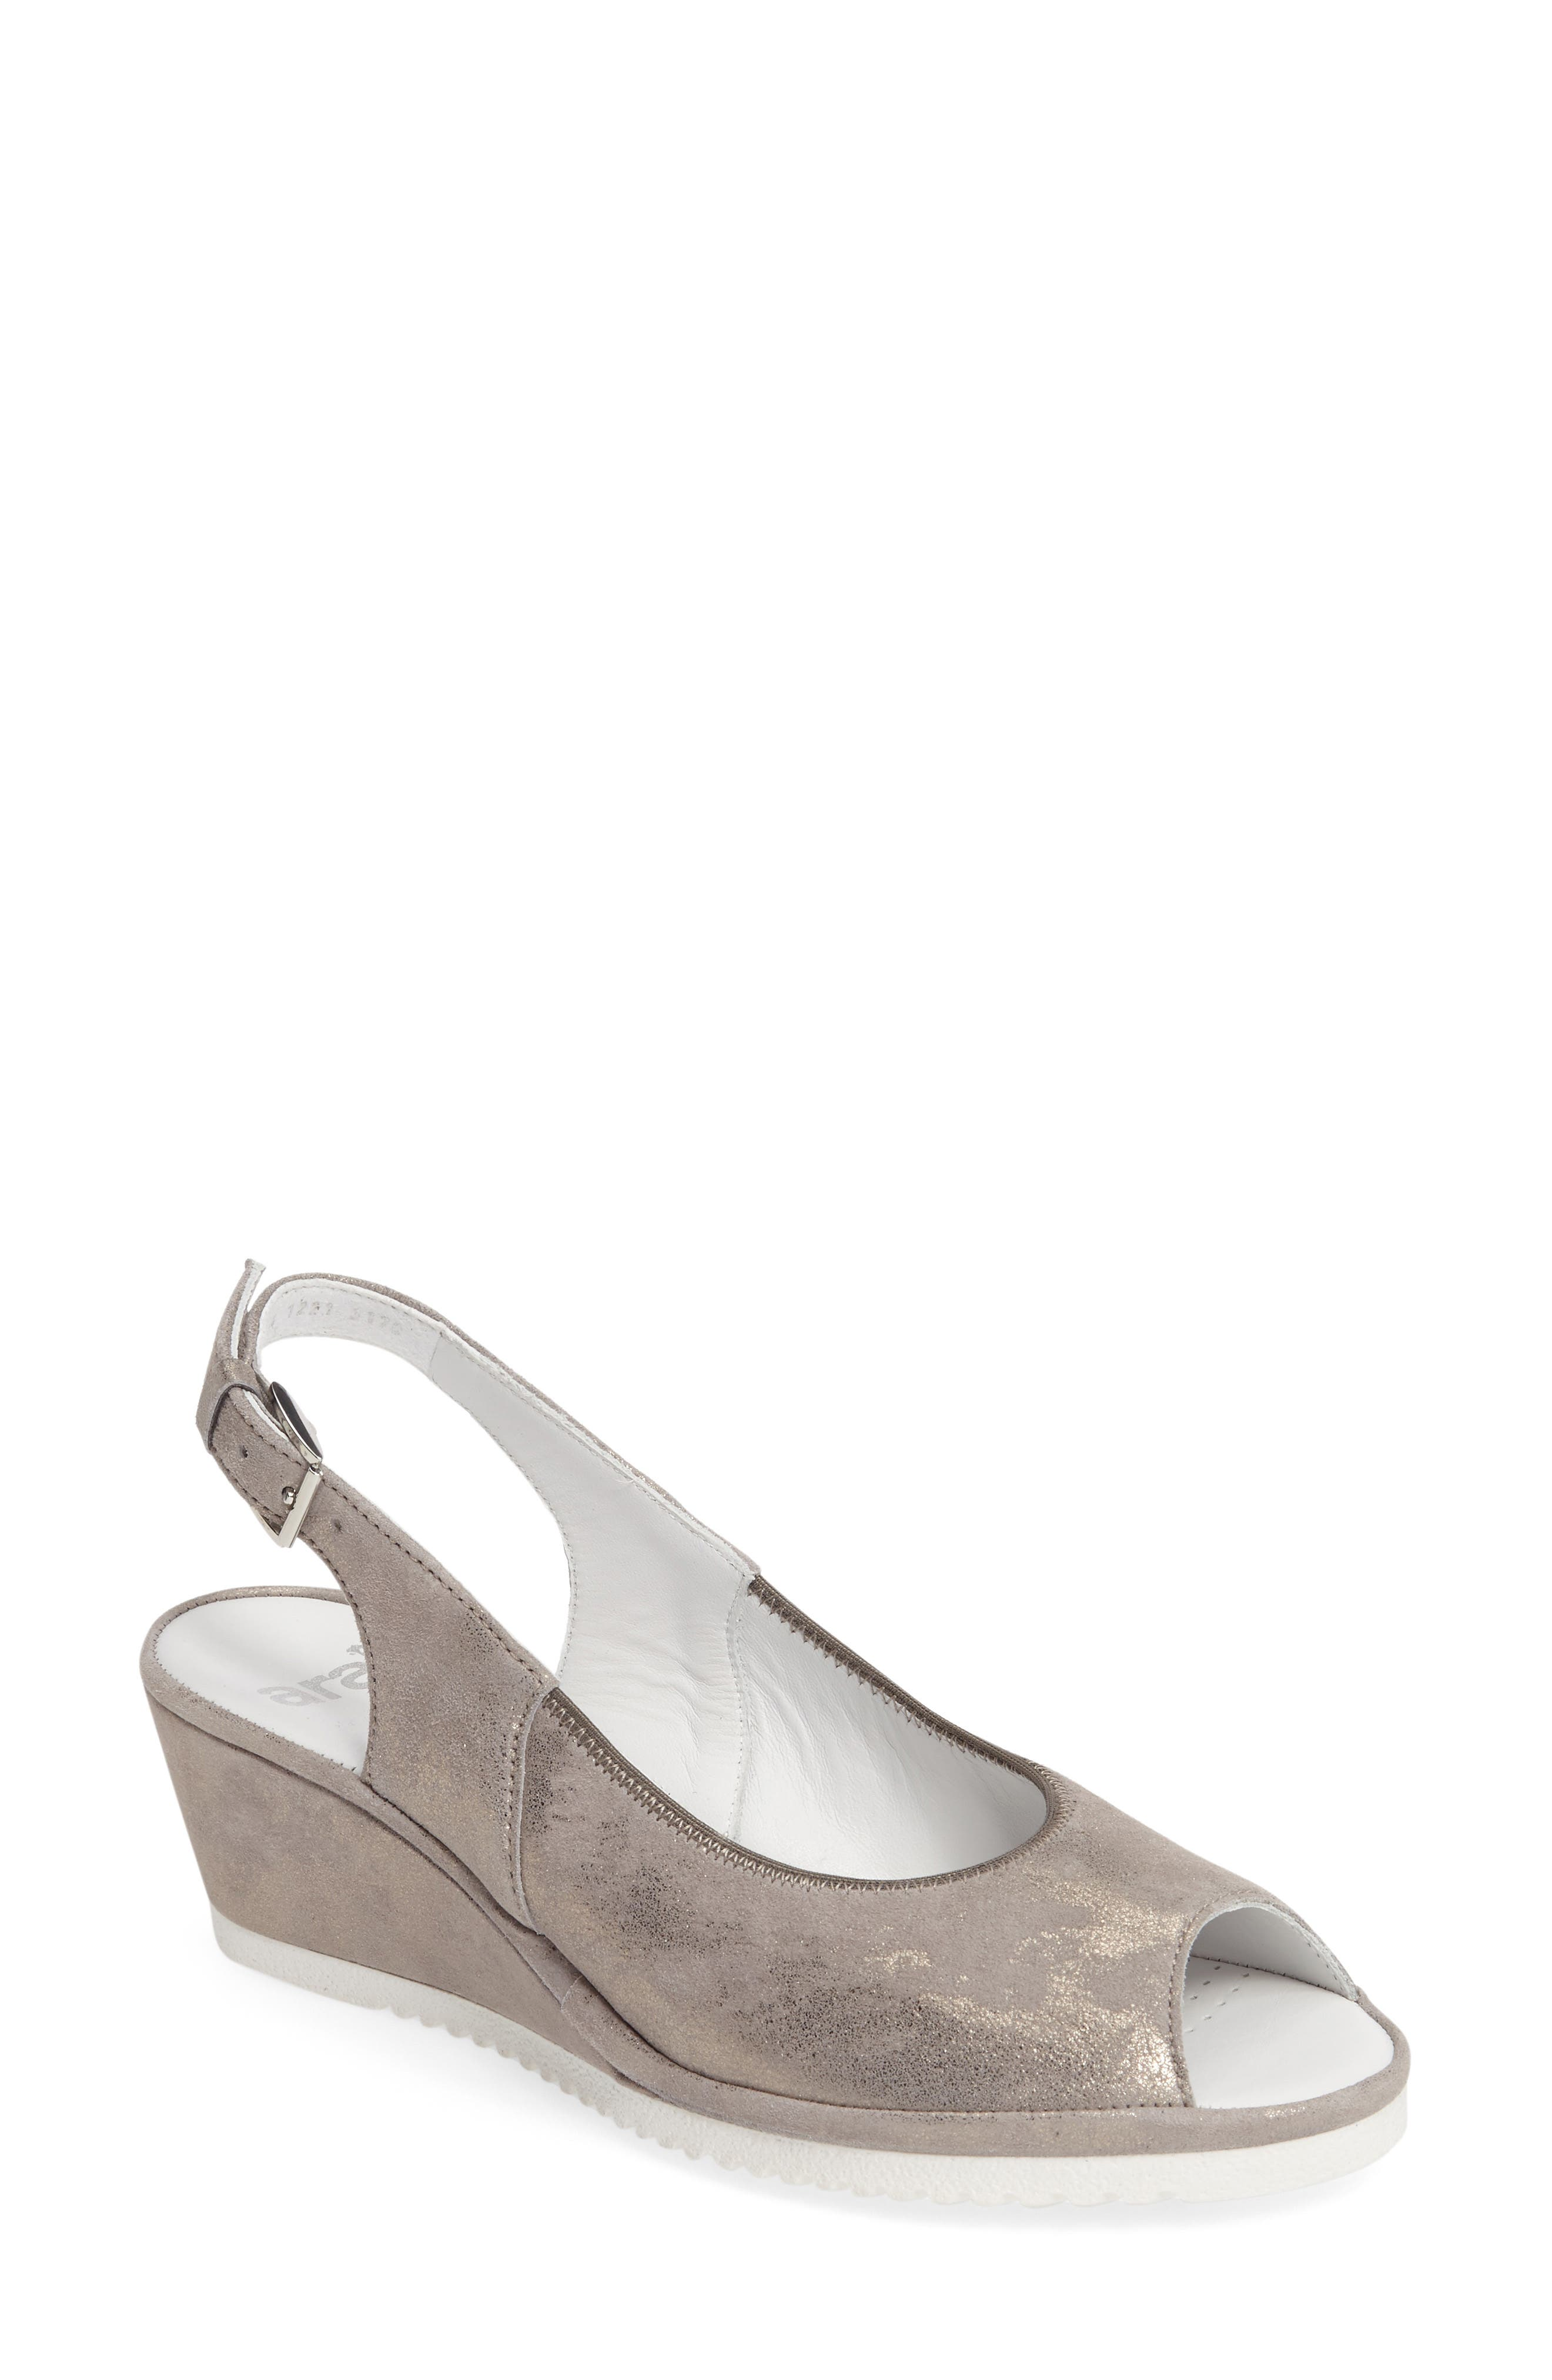 ARA Colleen Sandal, Main, color, GREY LEATHER